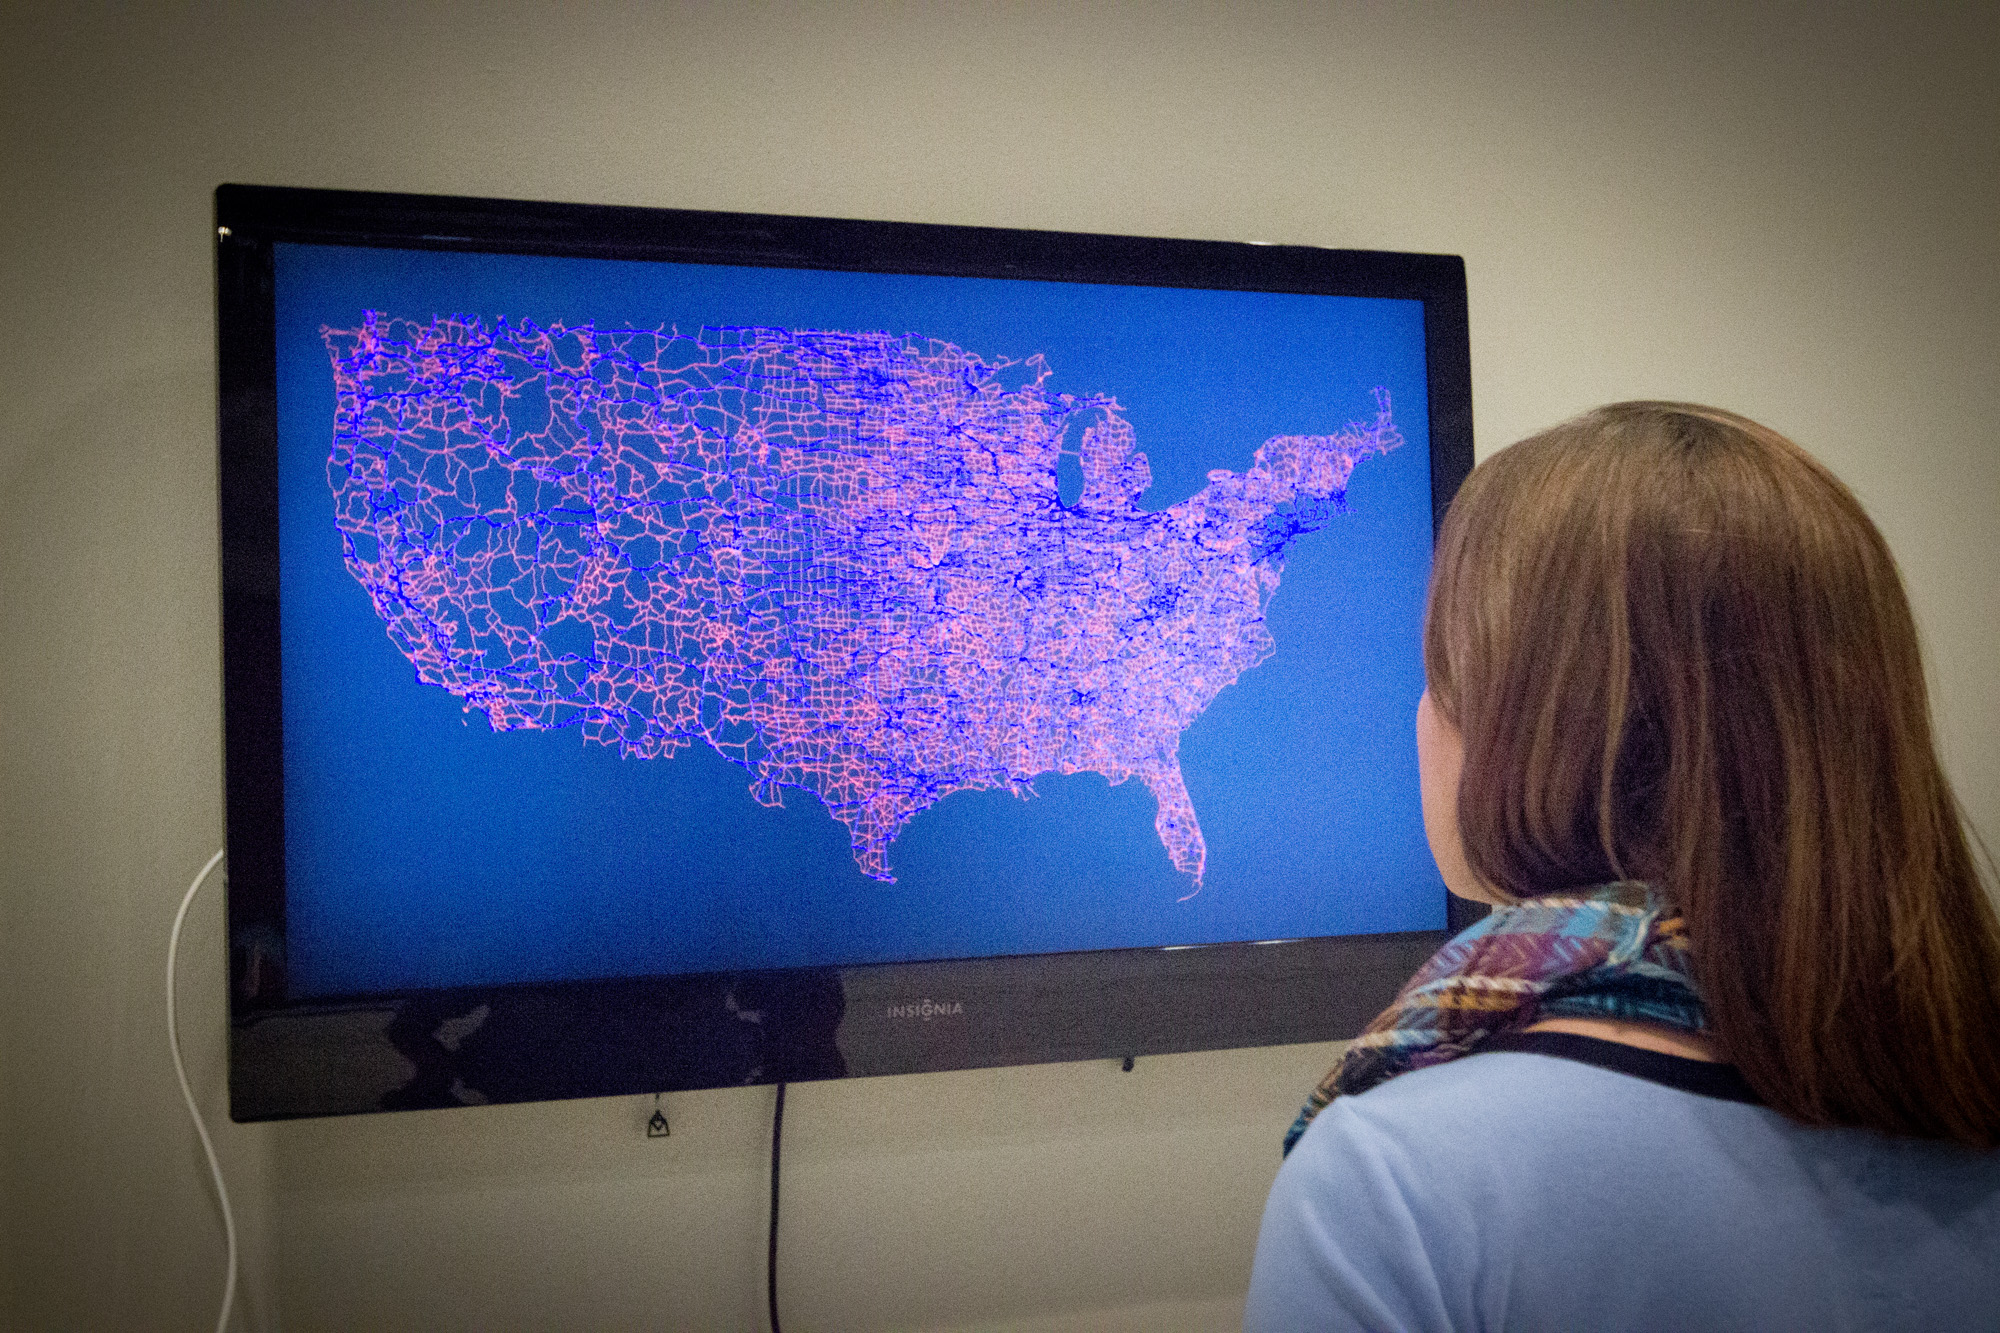 Recent BYU graduate Tiana Birrell's Mapping the Whole Exhibit will be open until Nov. 1. (Photo by Samantha Paskins.)